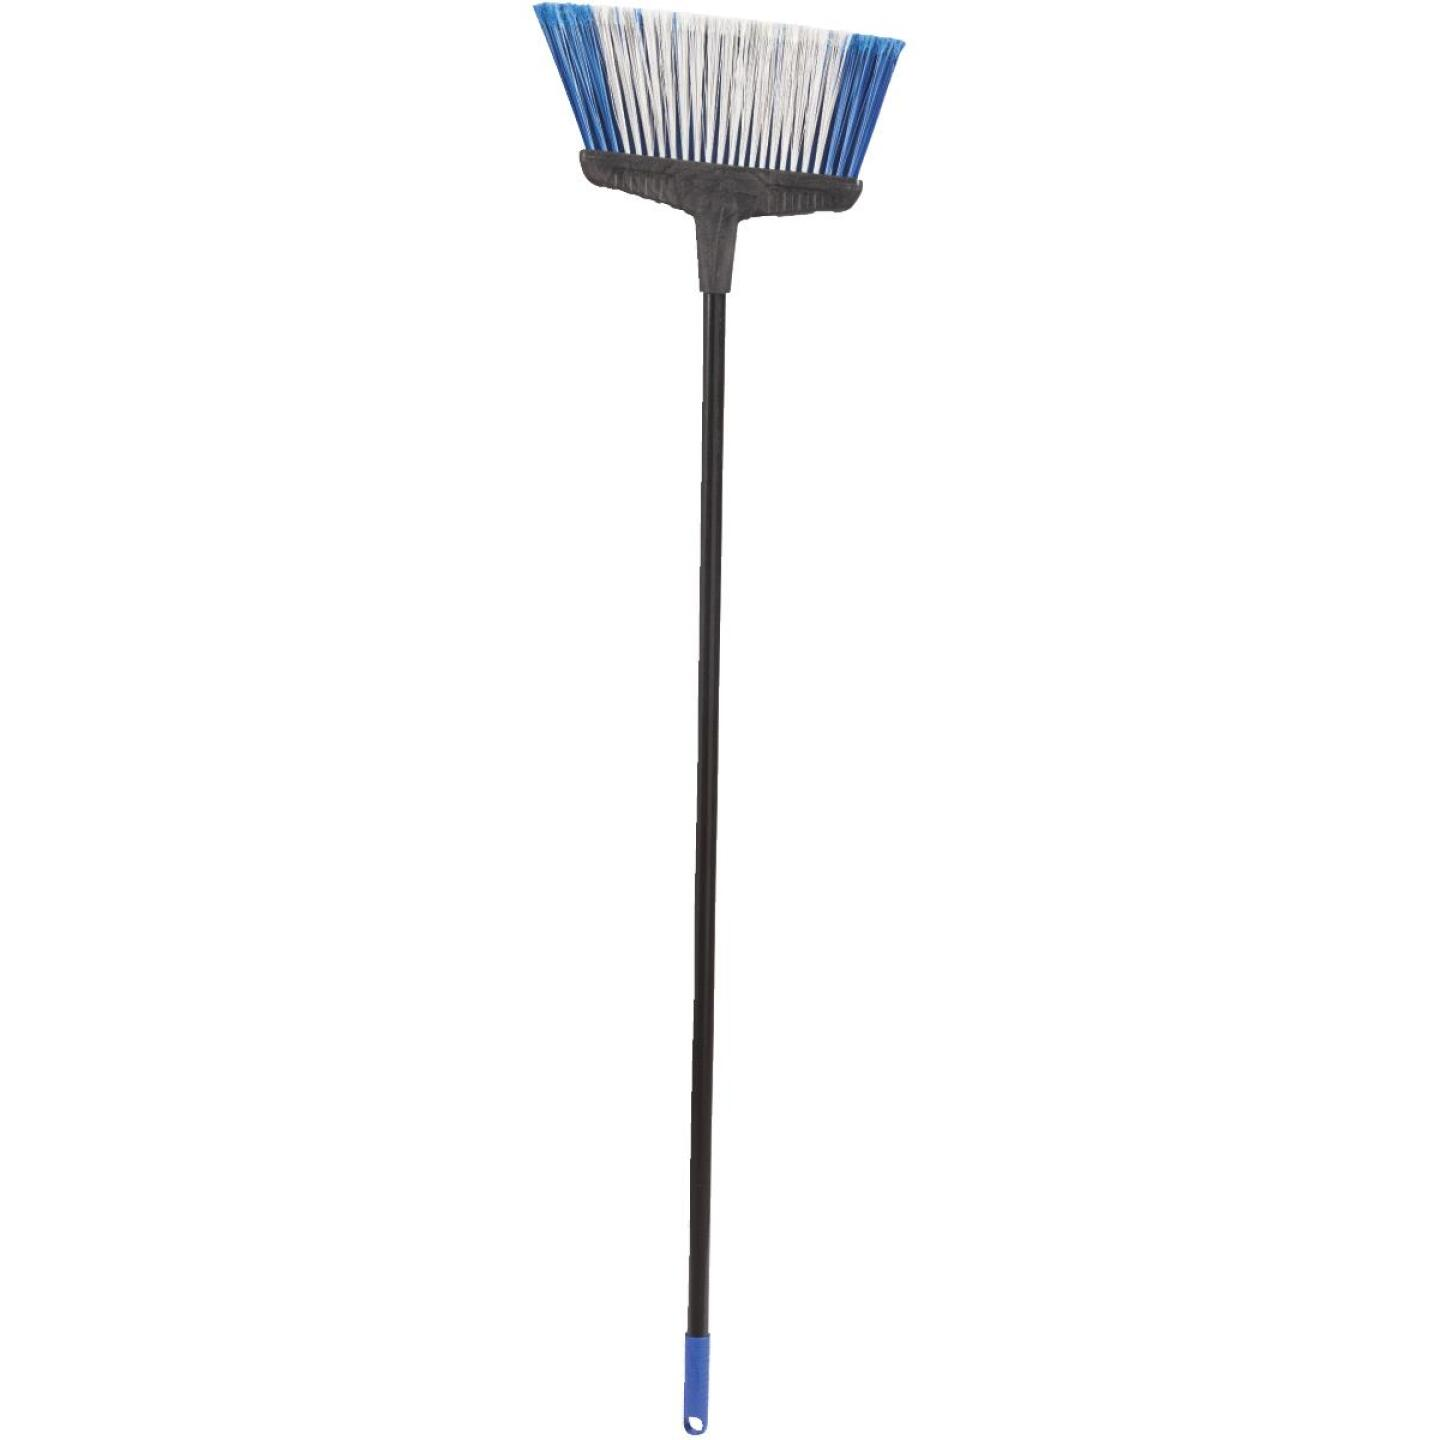 Quickie 14 In. Professional All-Purpose Angle Broom Image 1